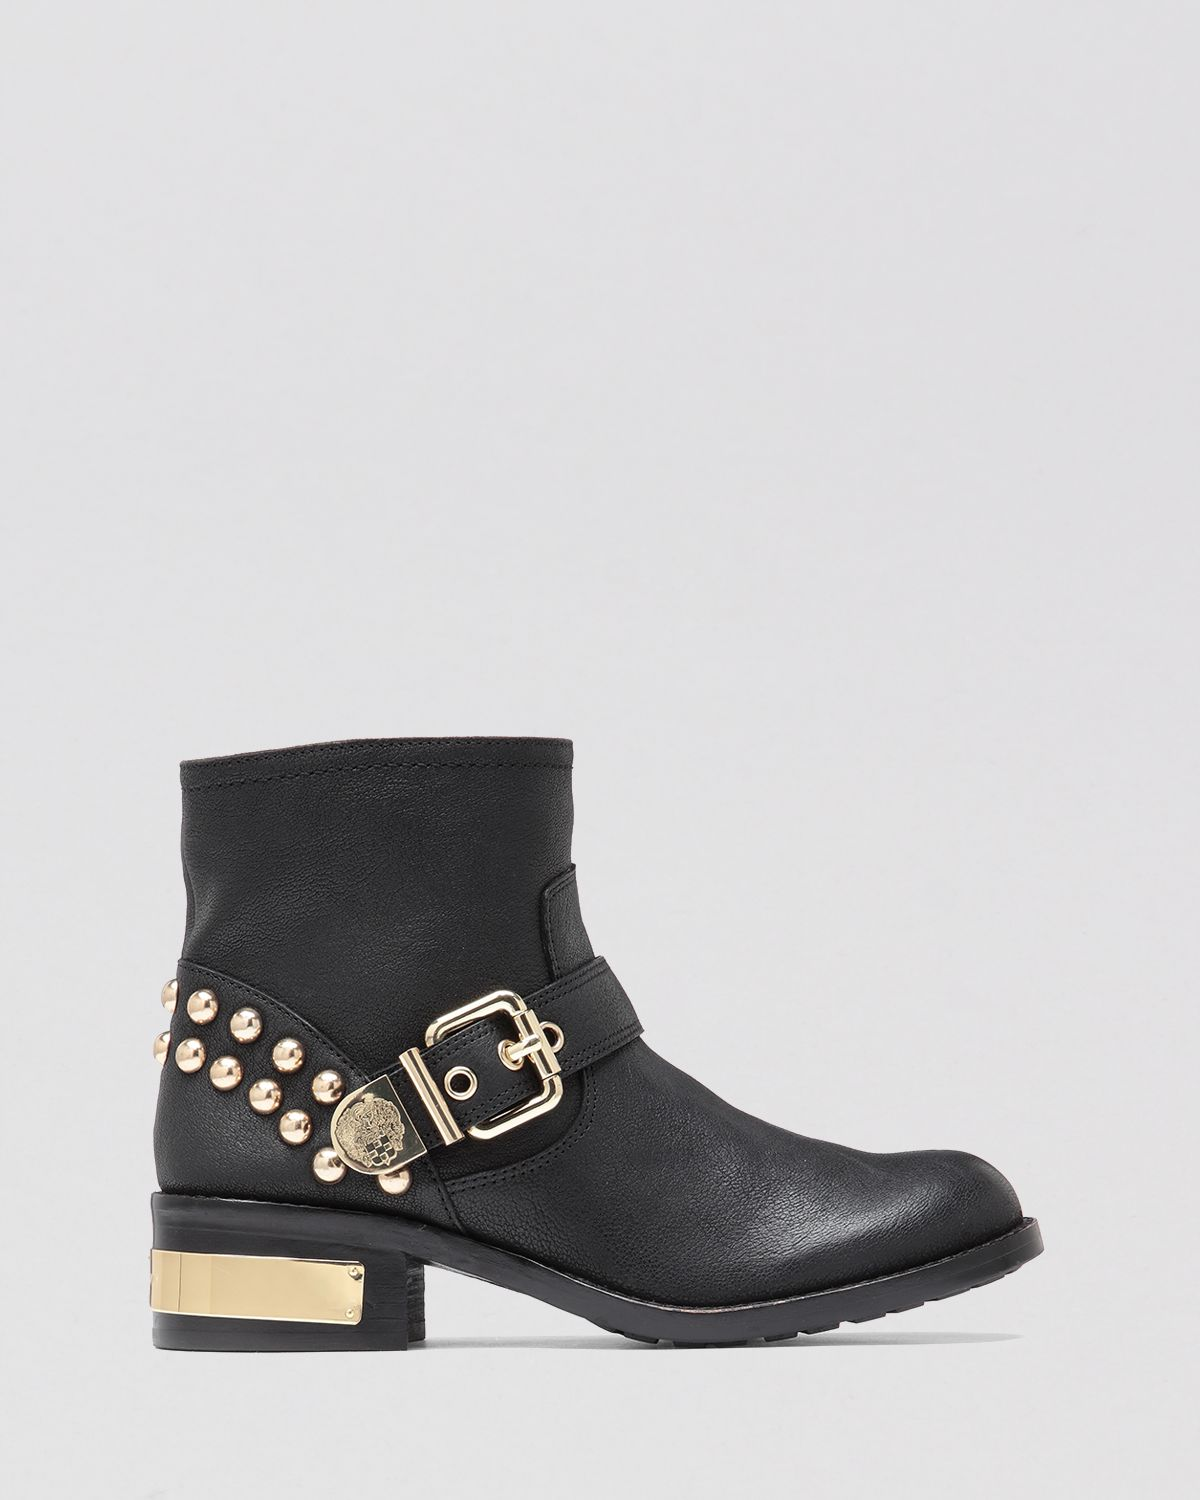 Vince Camuto Moto Boots Windetta Studded in Black